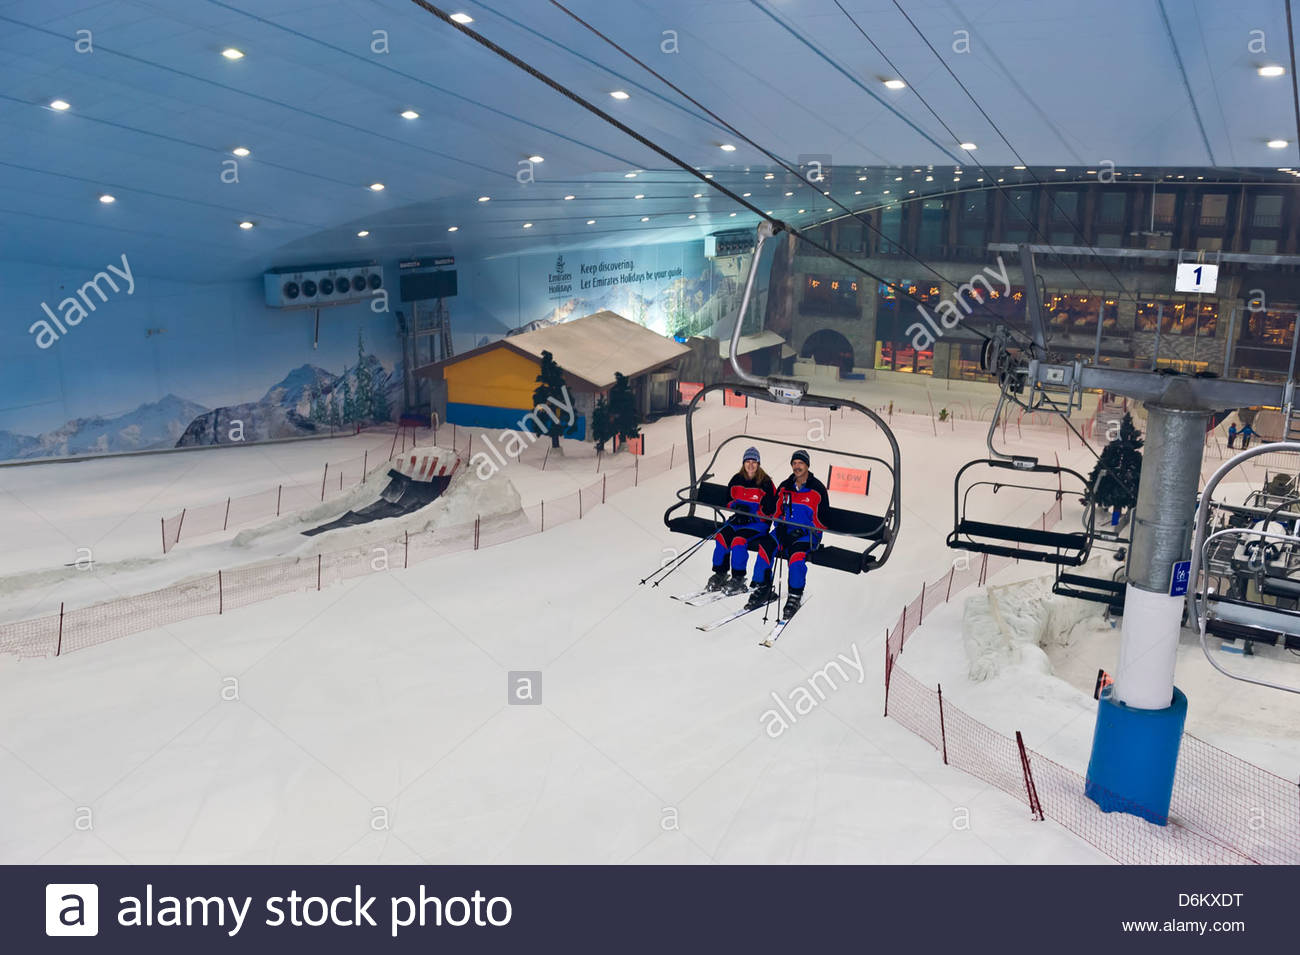 Skiing Ski Dubai An Indoor Slope In The Mall Of Emirates